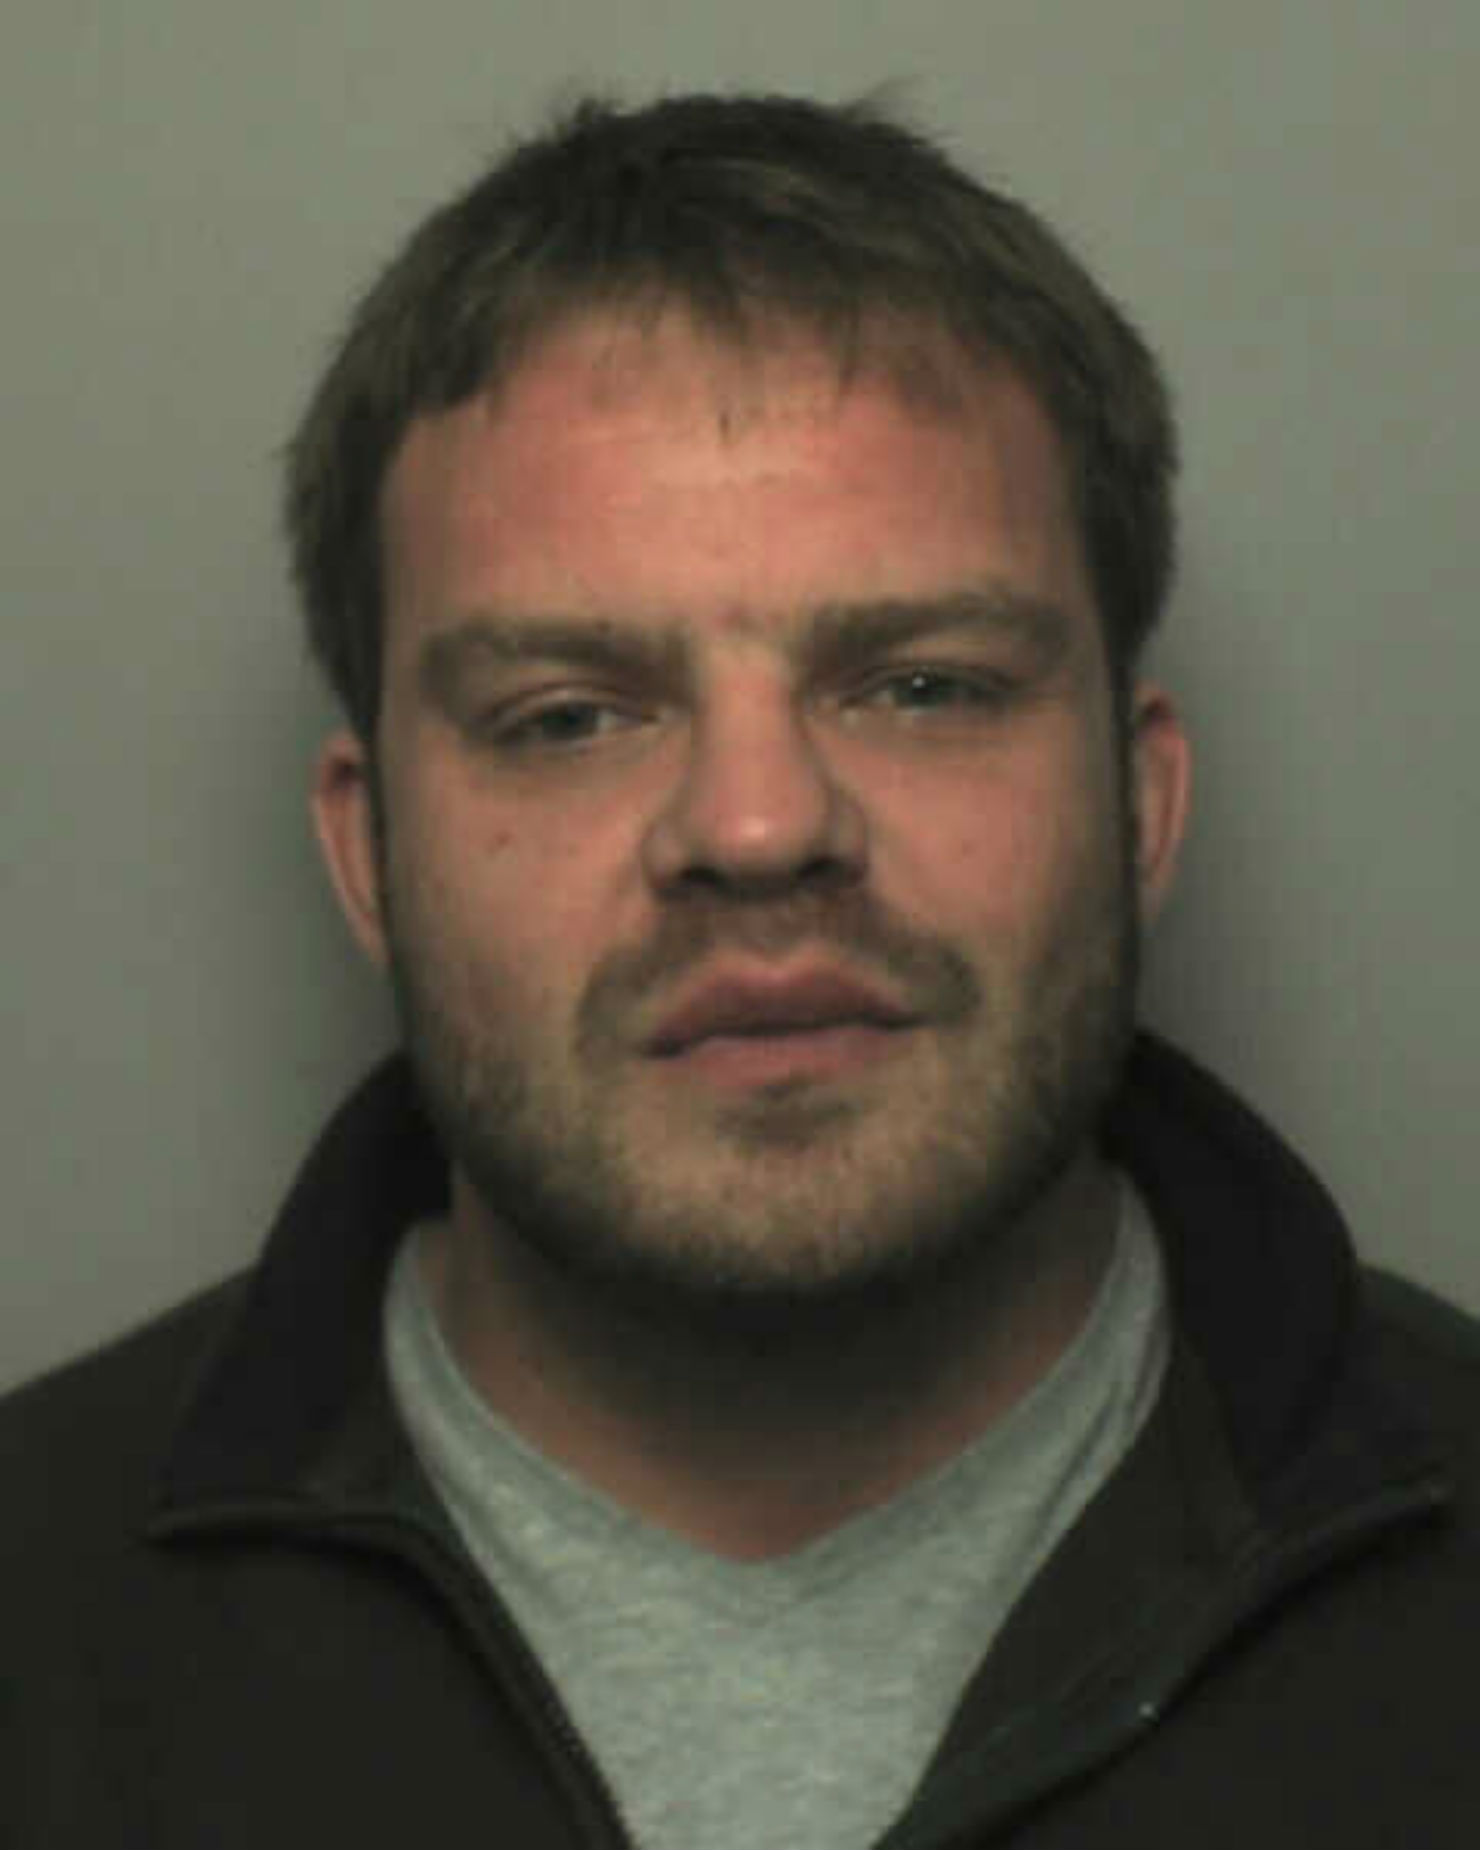 Eastbourne sex offender on the run